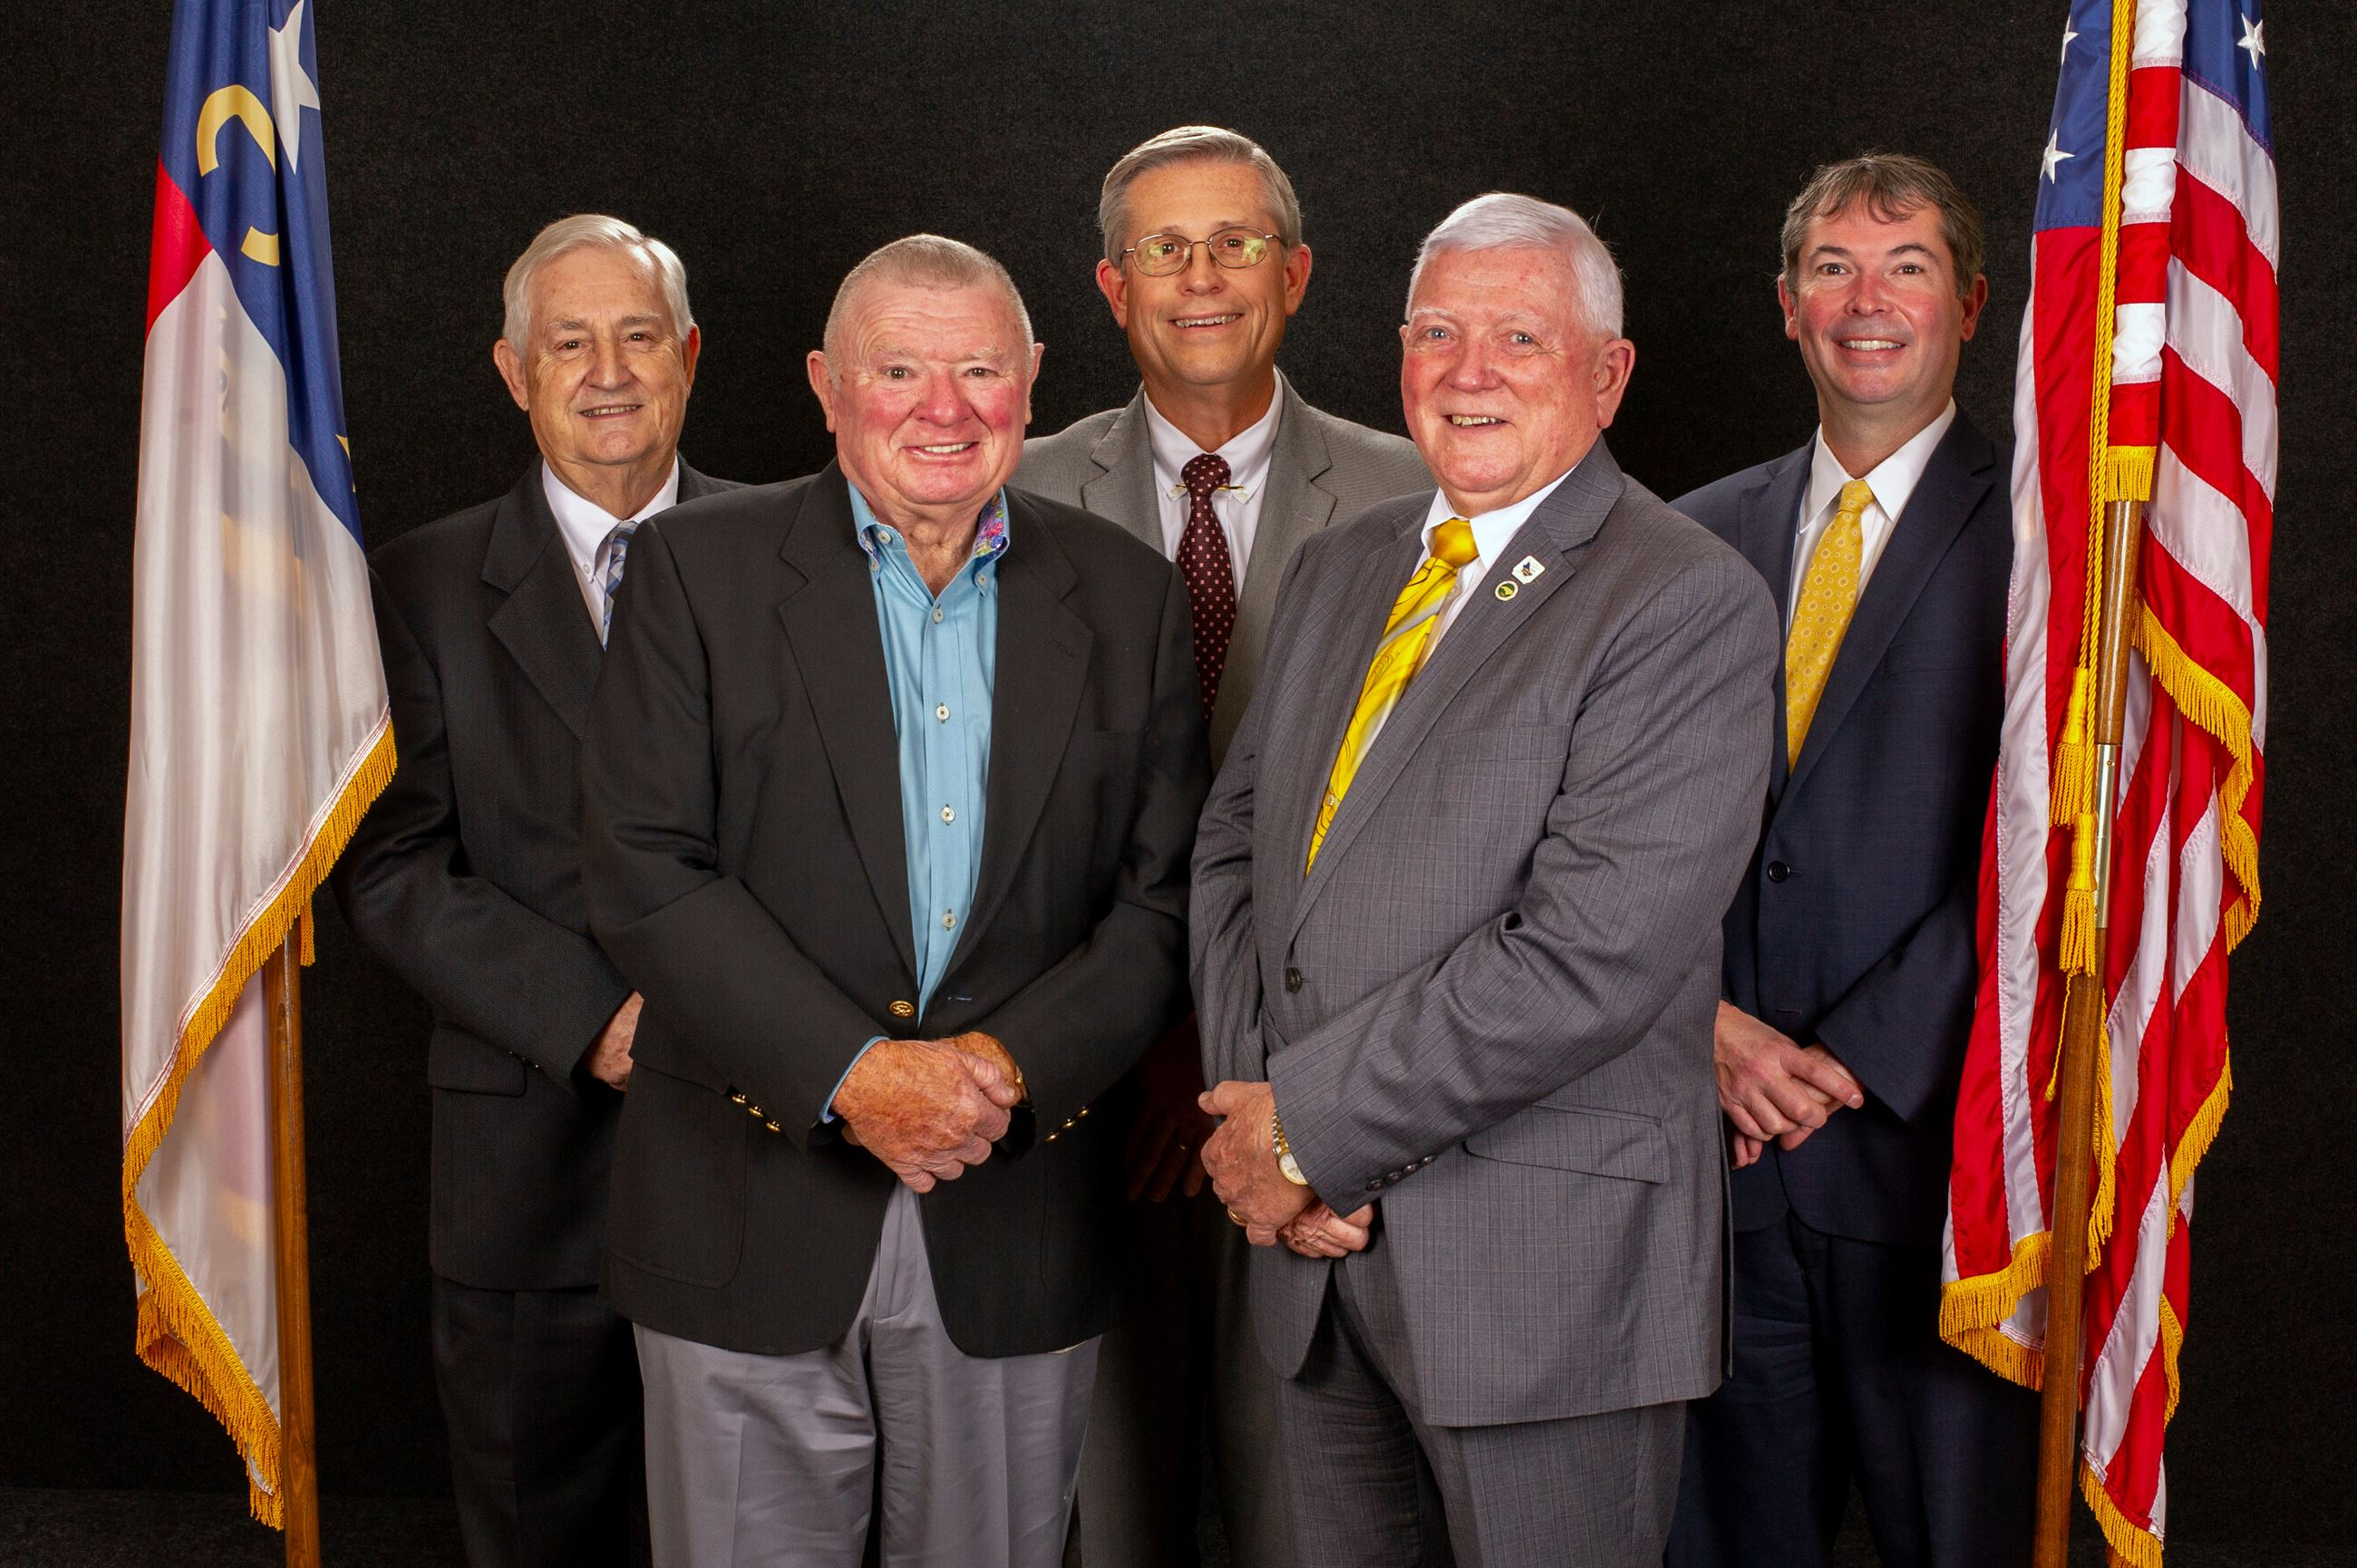 Five Men Who Serve as the Commissioners